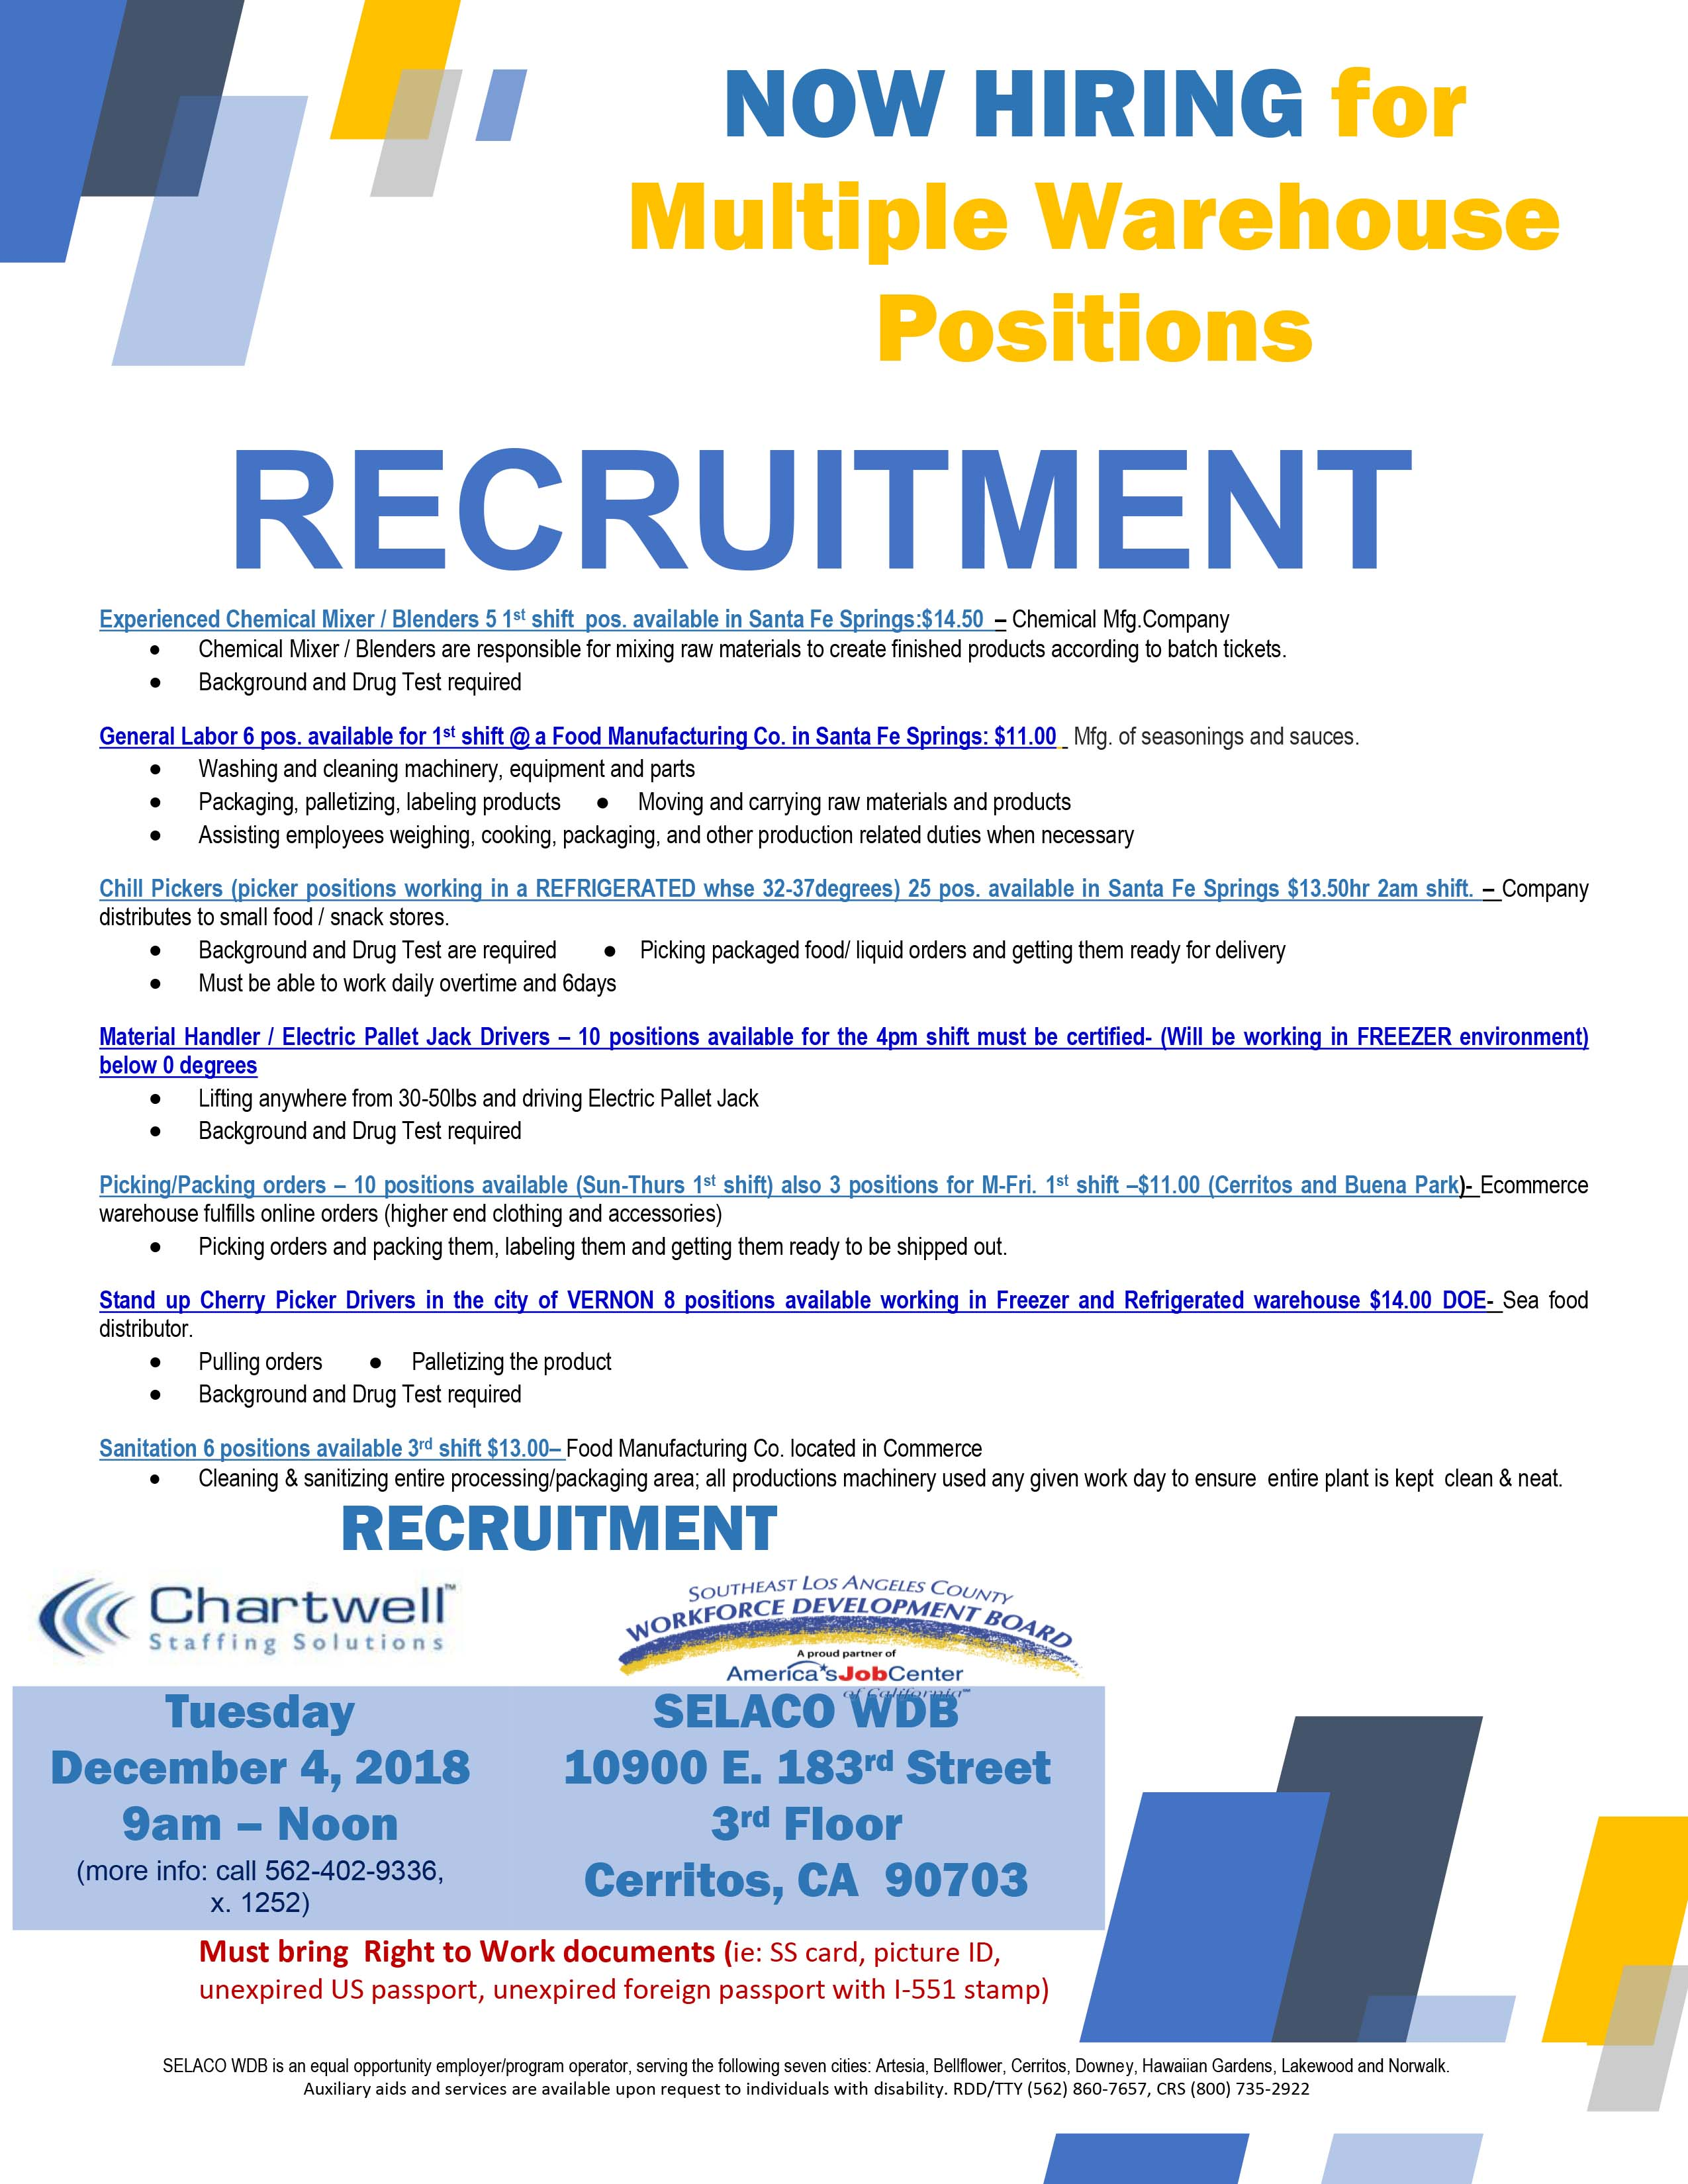 Recruitments – Southeast Los Angeles County